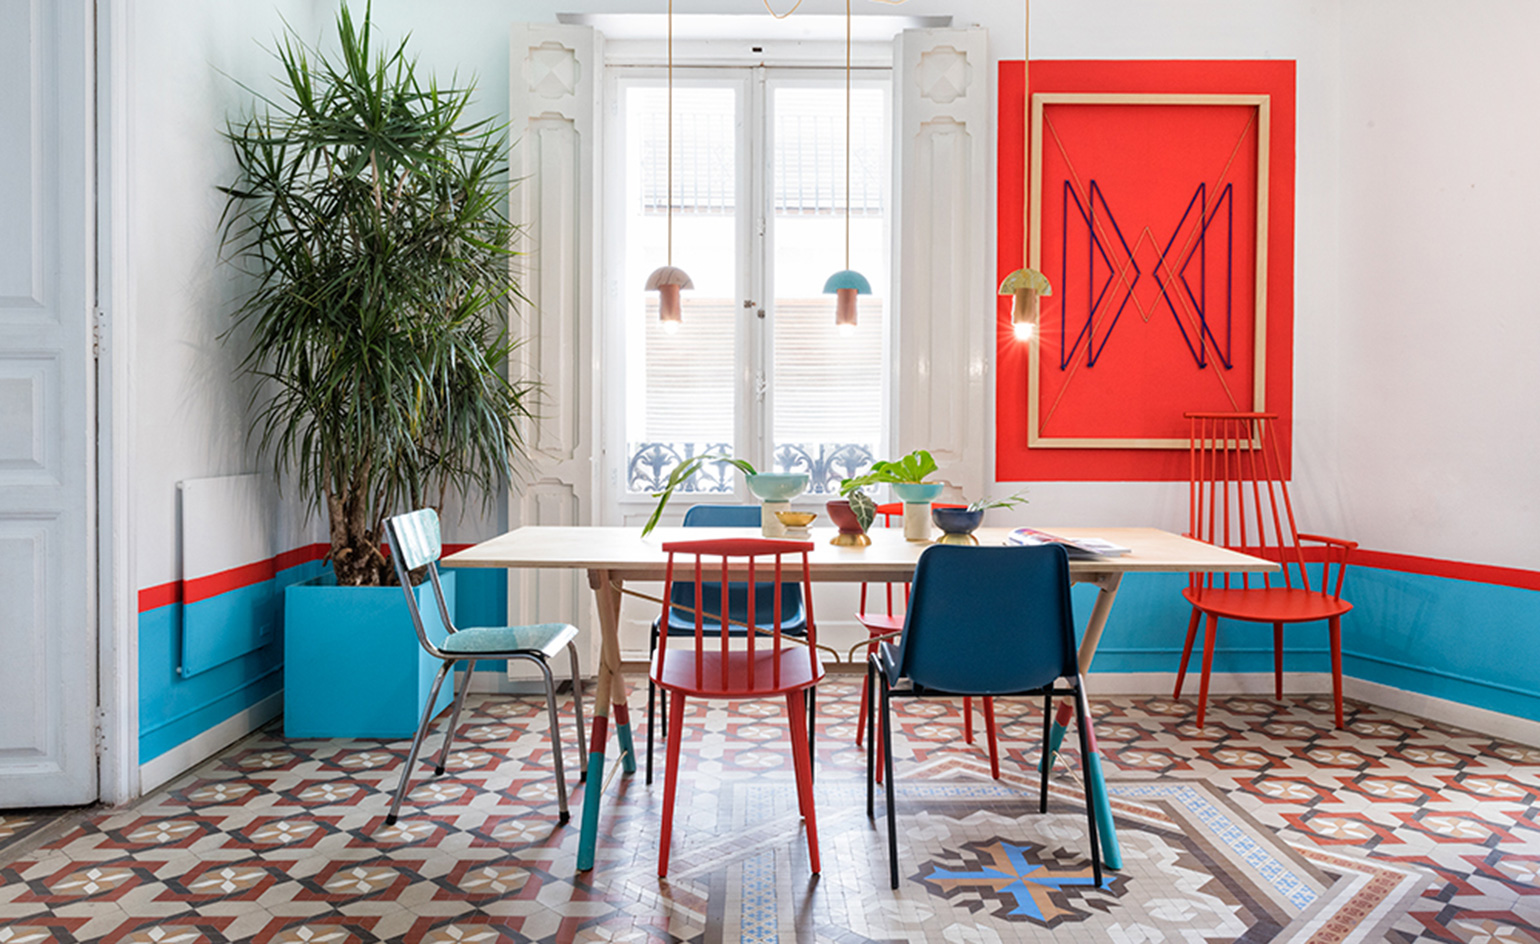 A Lounge Hostel in Spain that Will Warm Your Heart this Winter lounge hostel A Lounge Hostel in Spain that Will Warm Your Heart this Winter A Lounge Hostel in Spain that Will Warm Your Heart this Winter 2